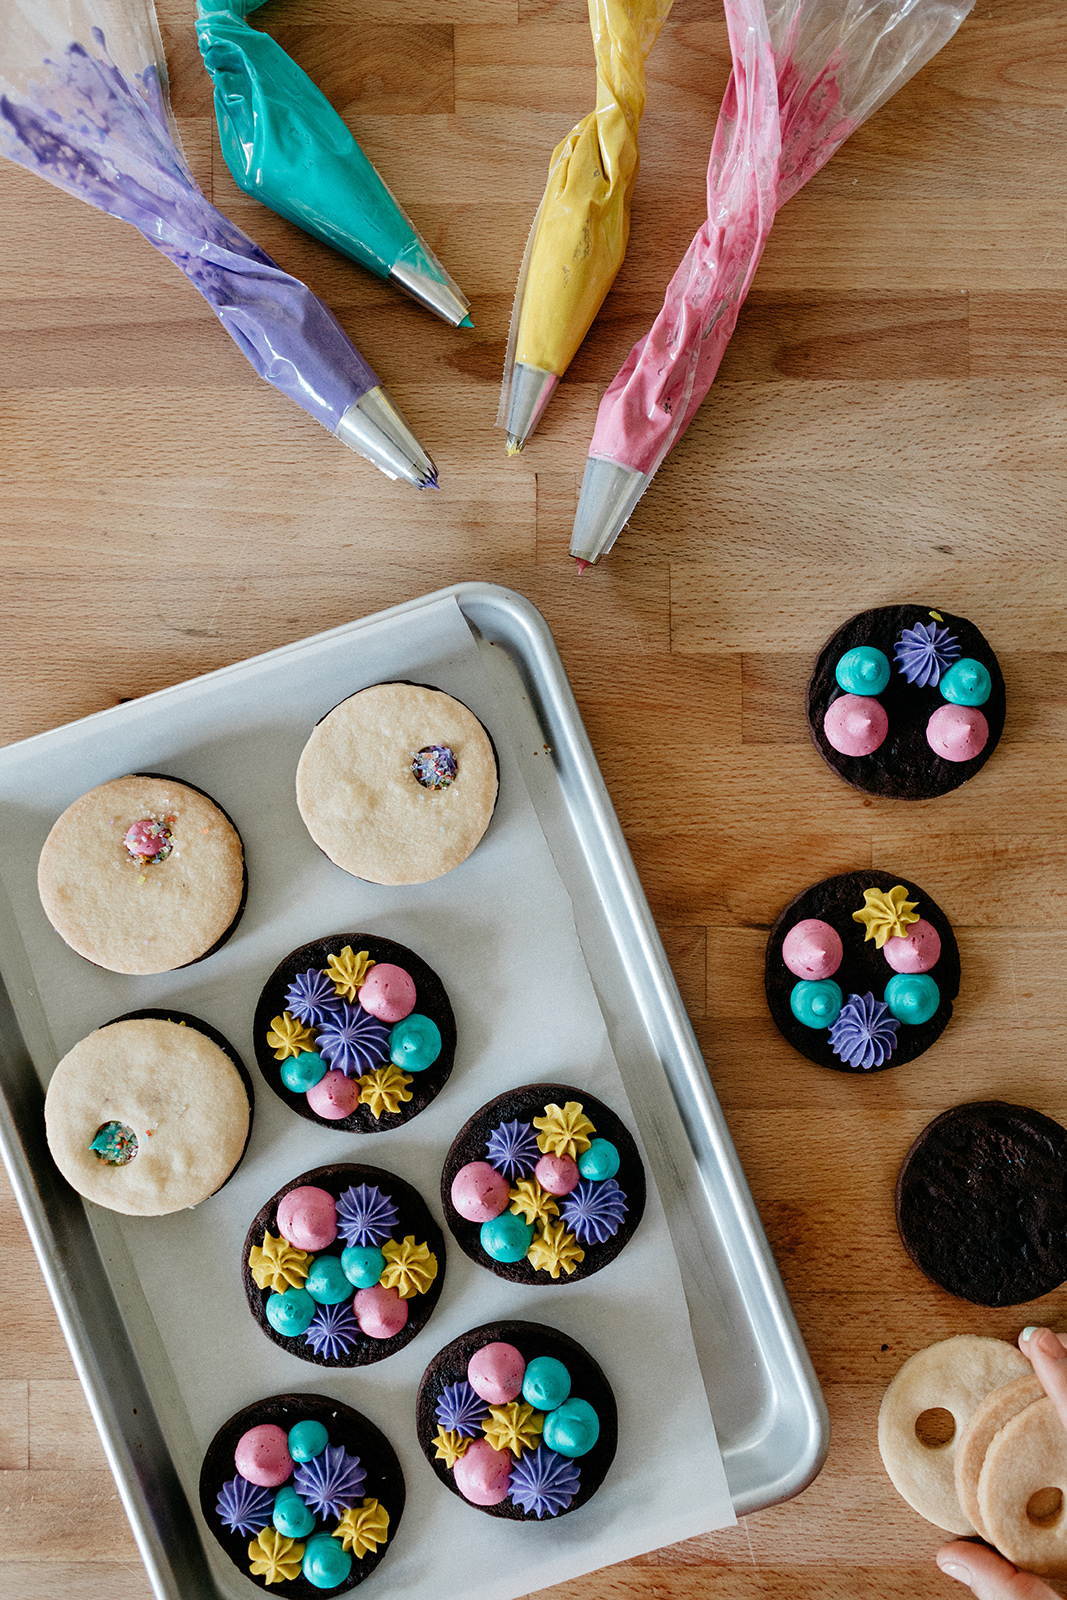 molly-yeh-shakespeare-cookies-3.jpg